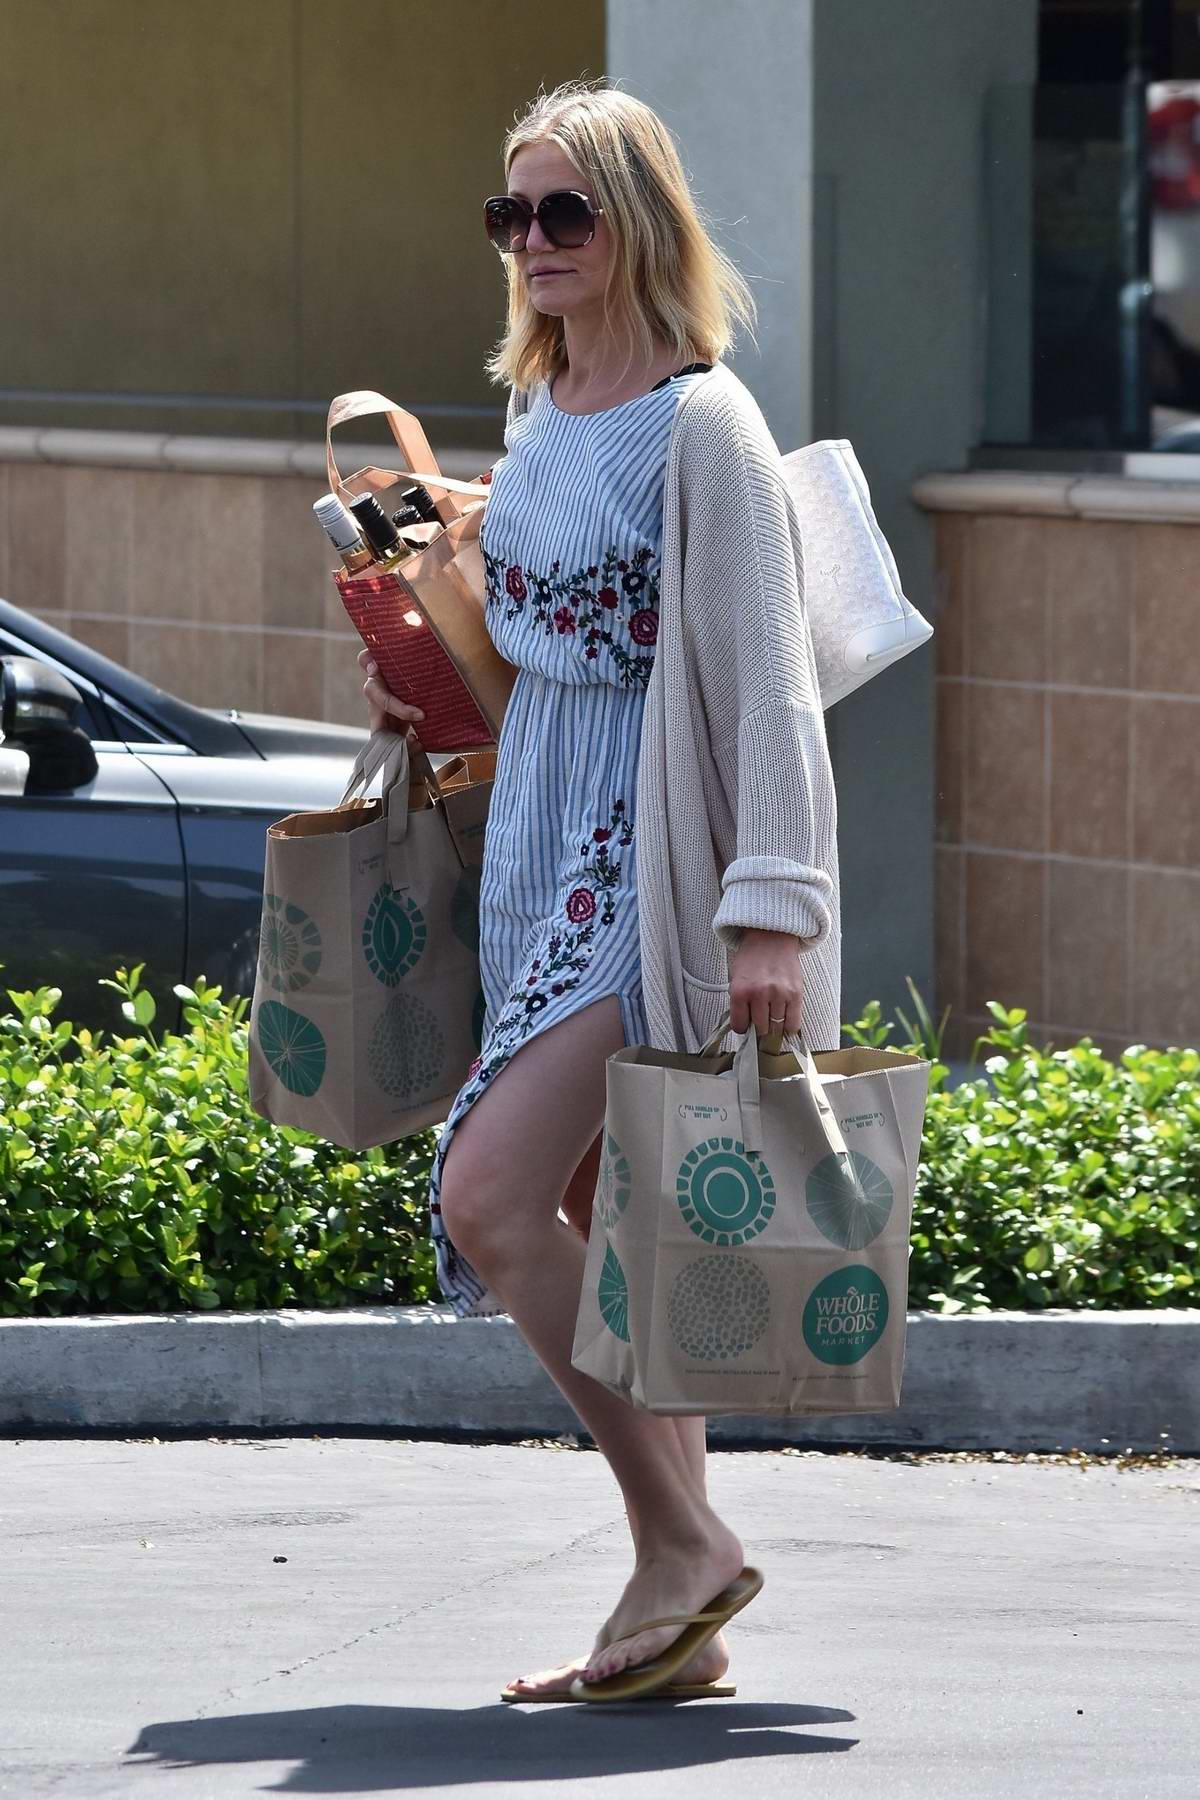 Cameron Diaz wore a blue striped dress as she grabbed some groceries from Whole Foods in Glendale, Los Angeles